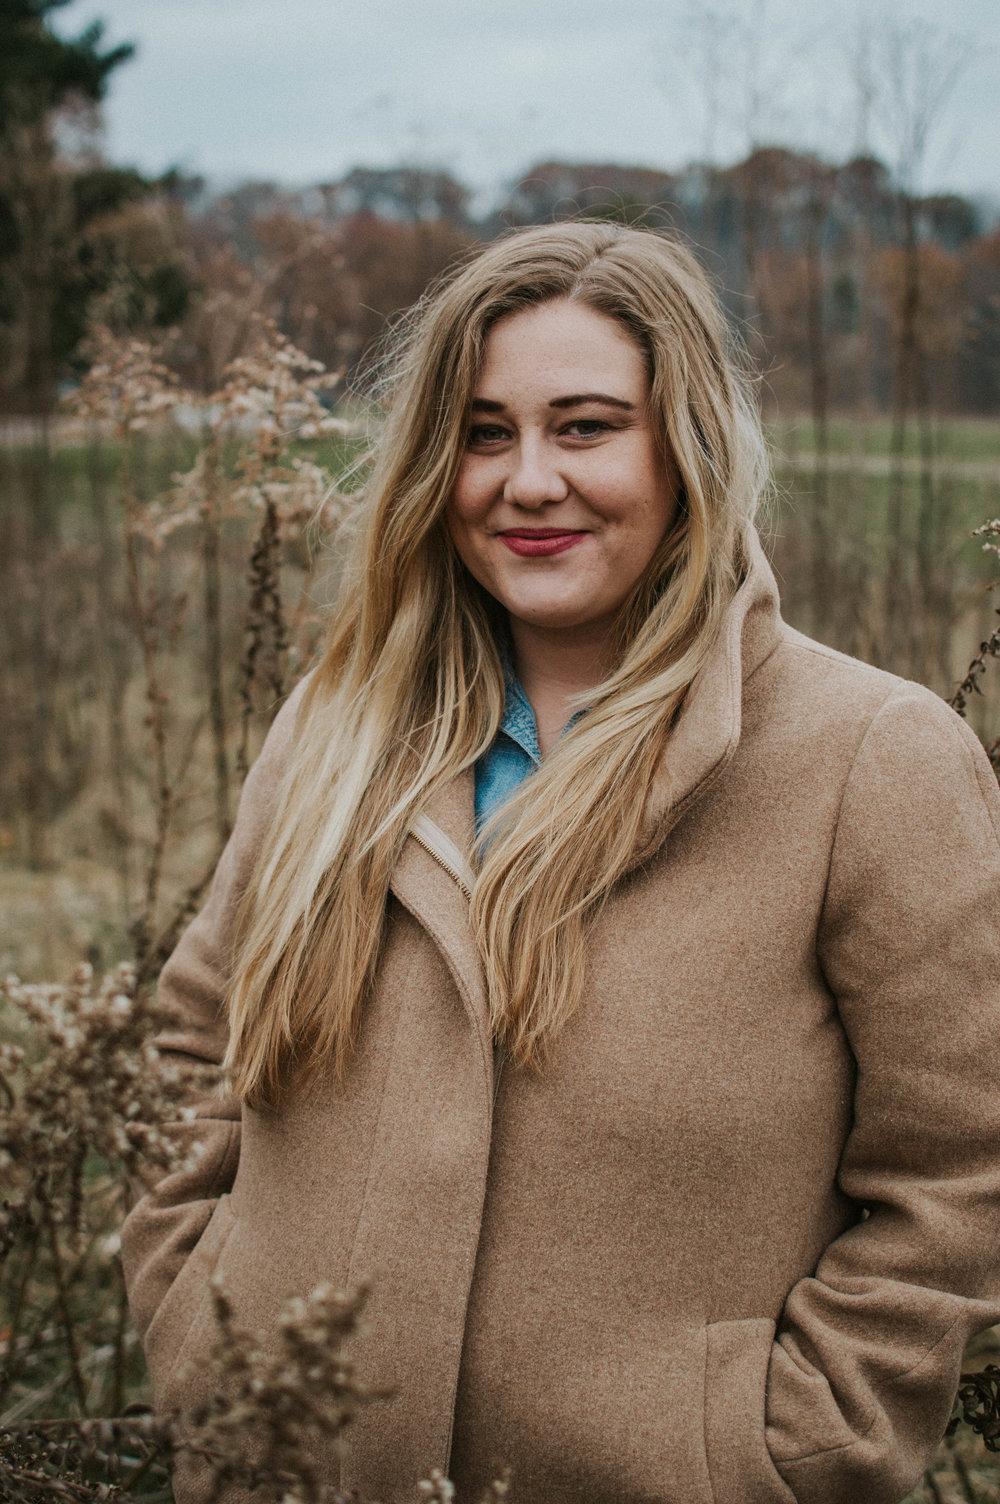 stephanie delacy interview with oh so graceful.jpg